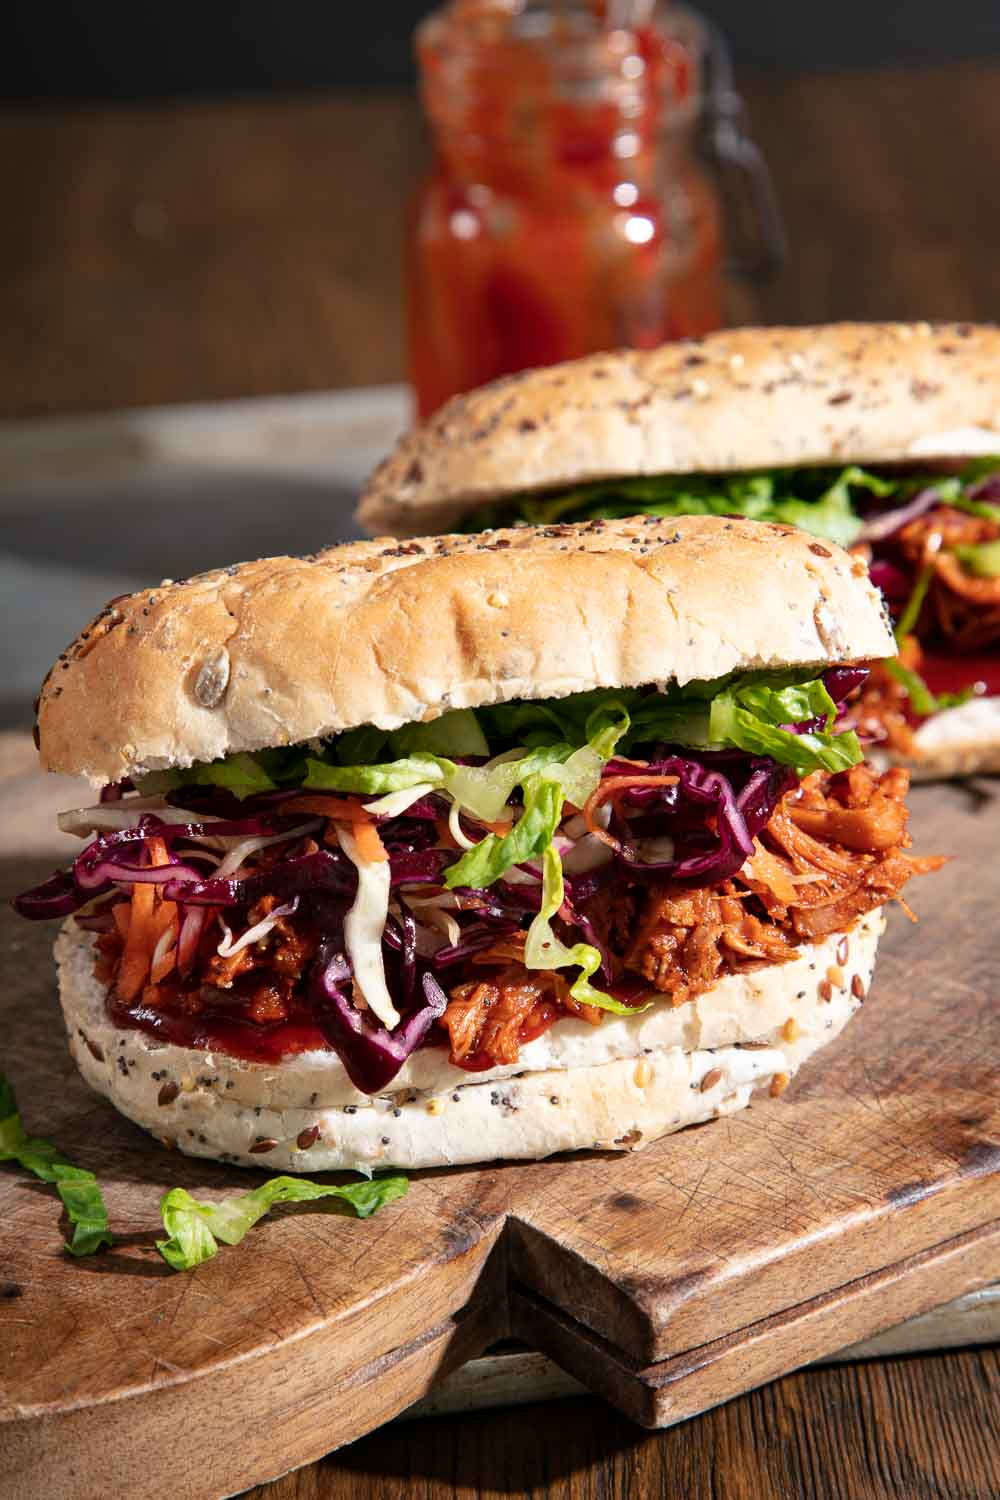 BBQ Jackfruit in a seeded bun with red cabbage coleslaw.